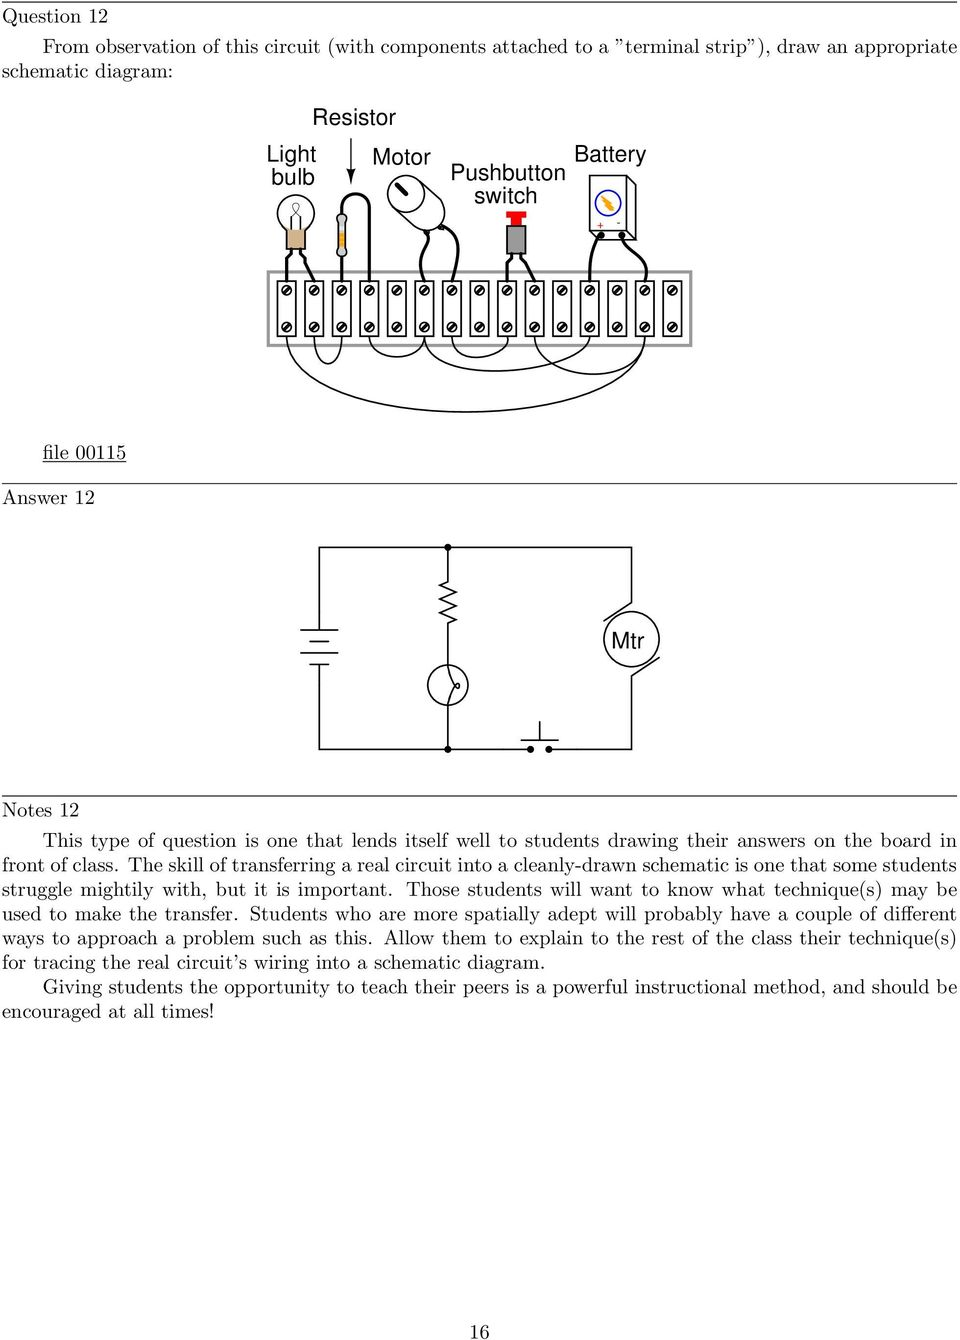 medium resolution of the skill of transferring a real circuit into a cleanly drawn schematic is one that